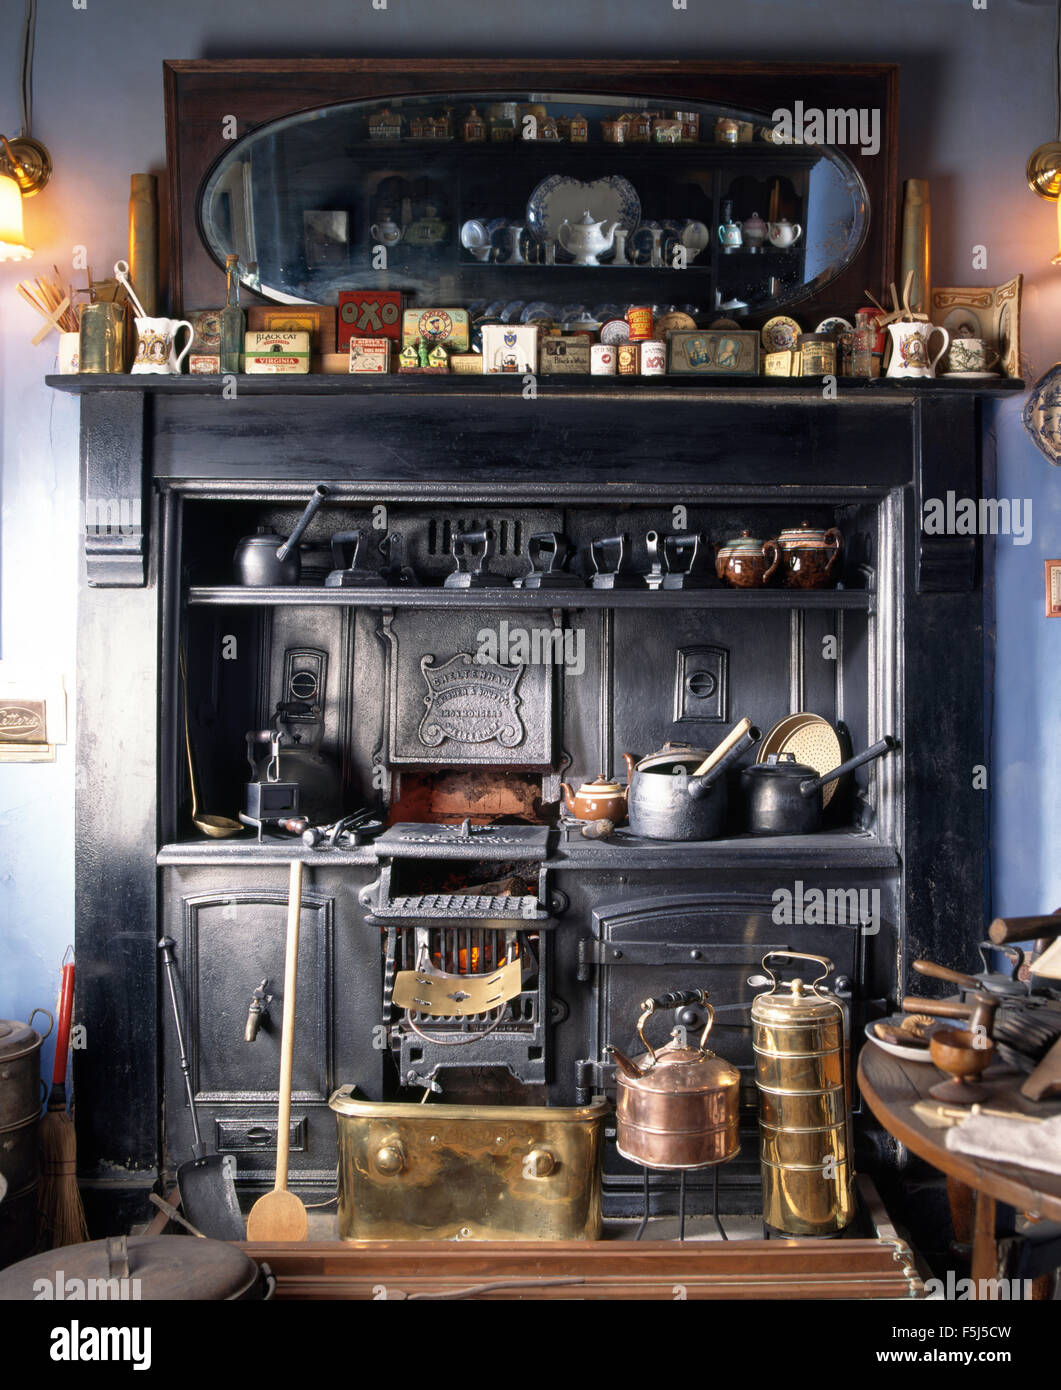 Close Up Of Copper Pans And Antique Range Oven In A